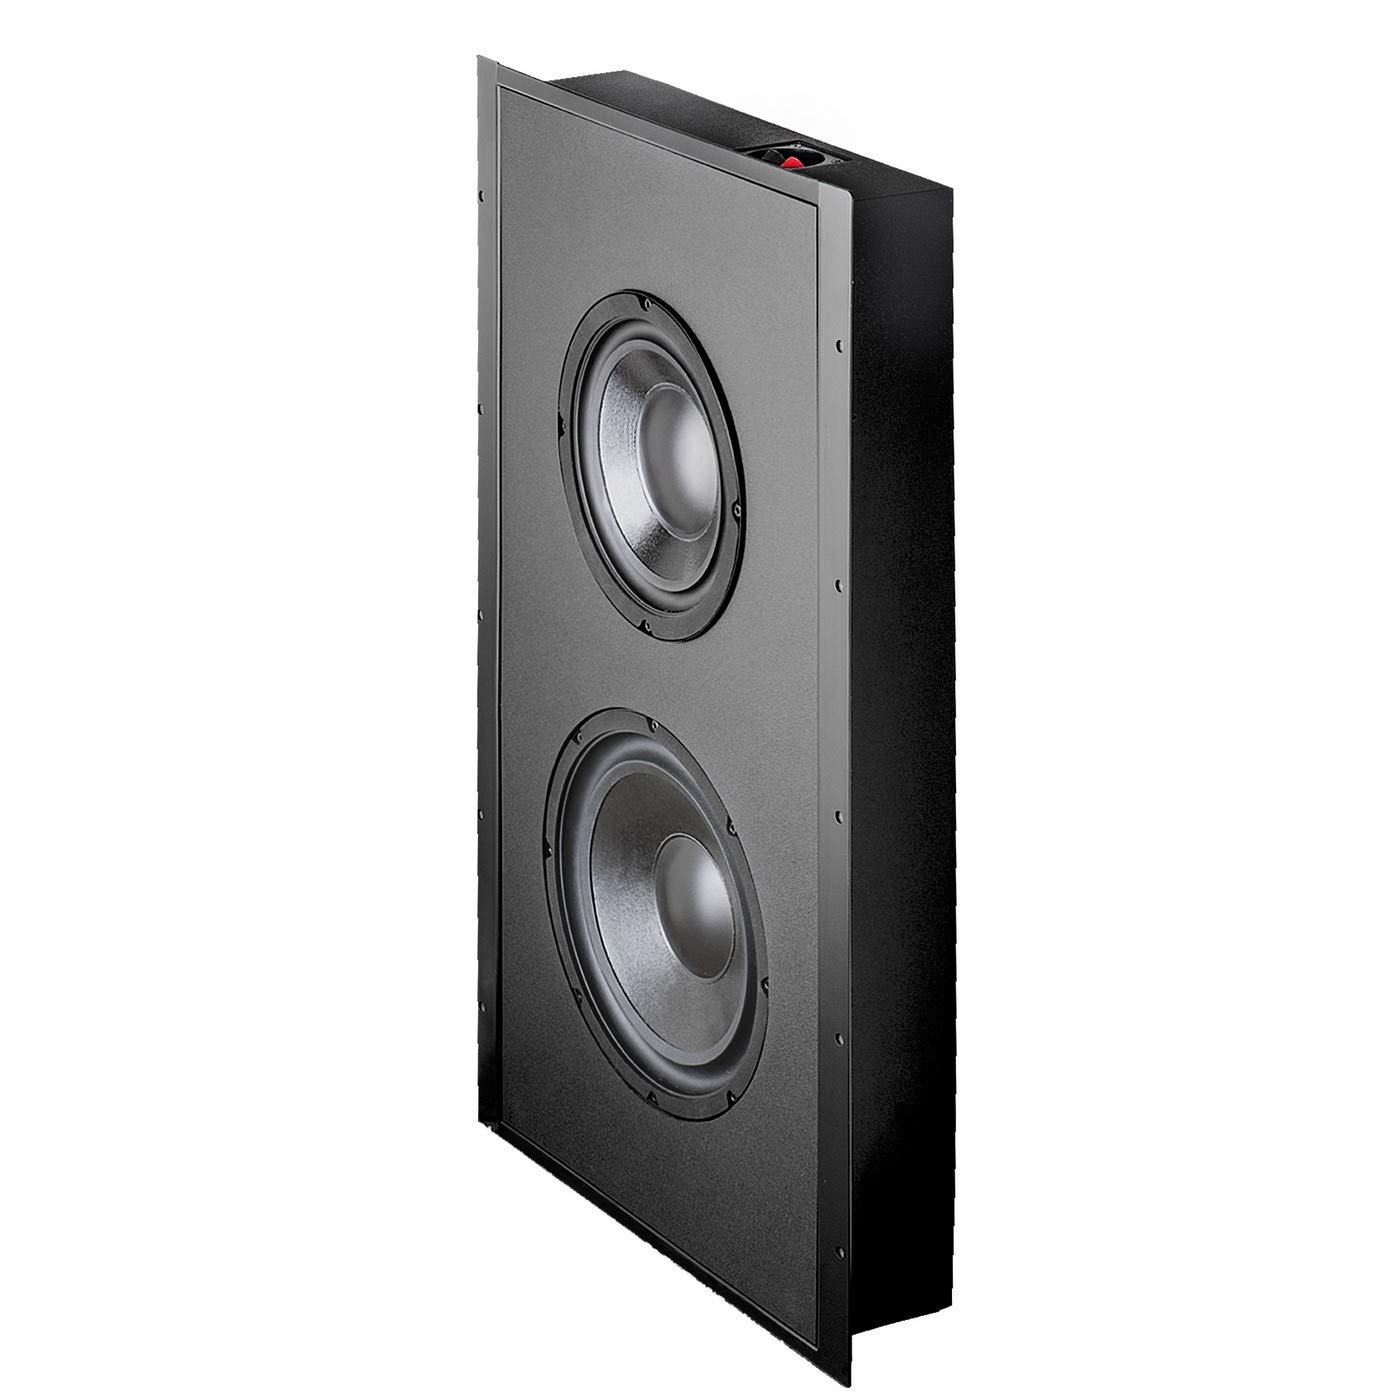 Osd In Wall 300w Low Profile Home Theater Subwoofer Trimless Design 8 Woofer W 10 Passive Radiator Sl800d Price Buy Osd In Wall 300w Low Profile Home Theater Subwoofer Trimless Design 8 Woofer W